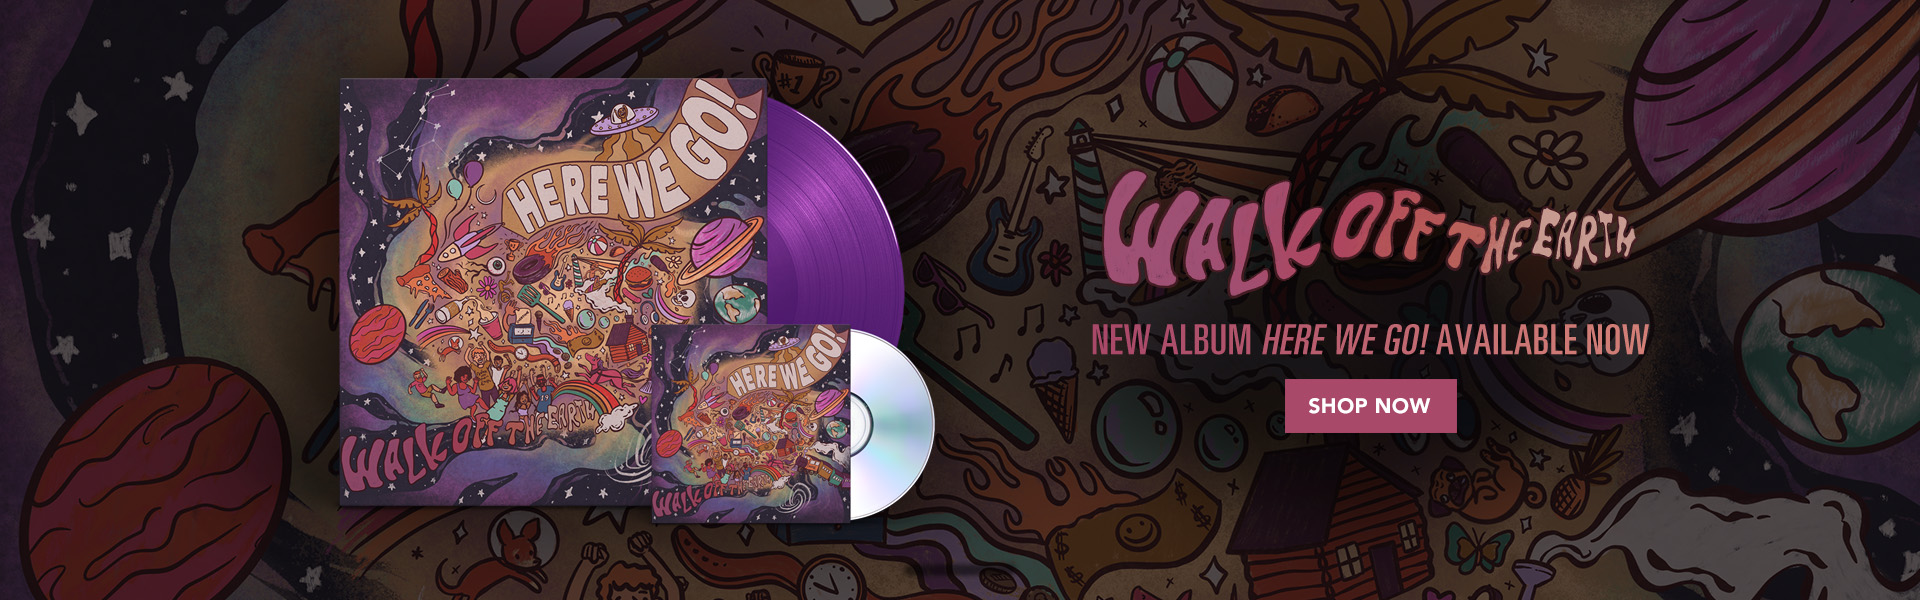 "Walk Off The Earth | New Album ""Here We Go"" Available on October 25 